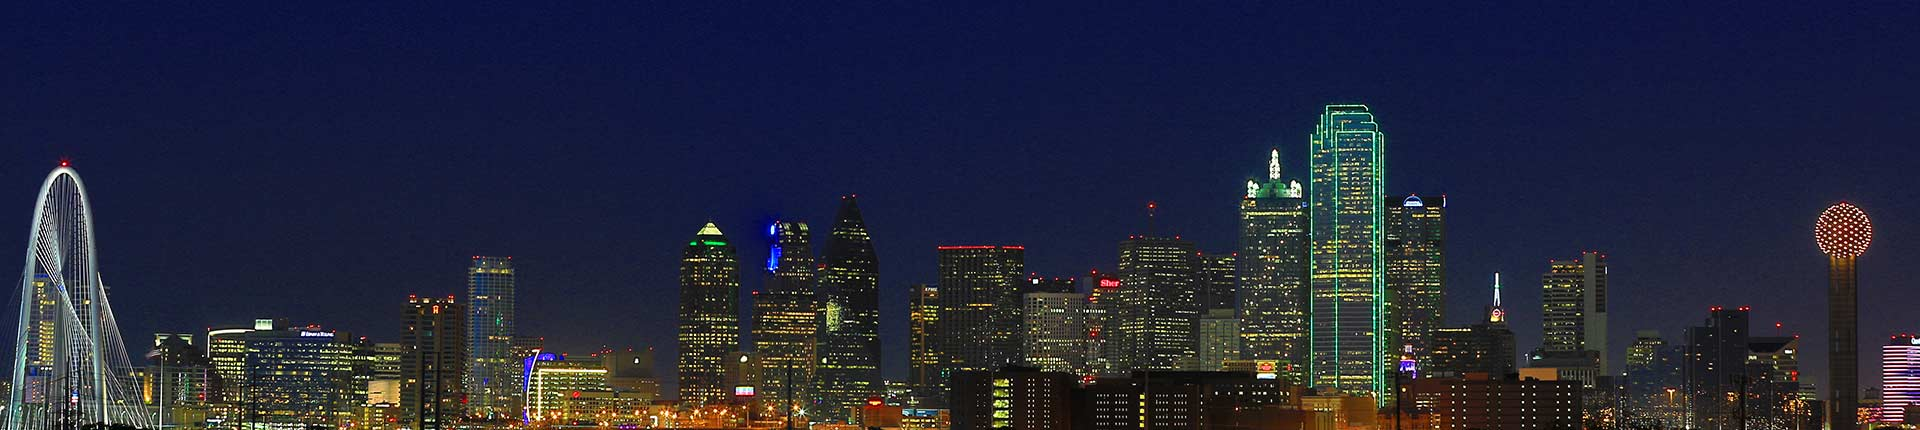 pcd-home-slide-dallas-skyline2